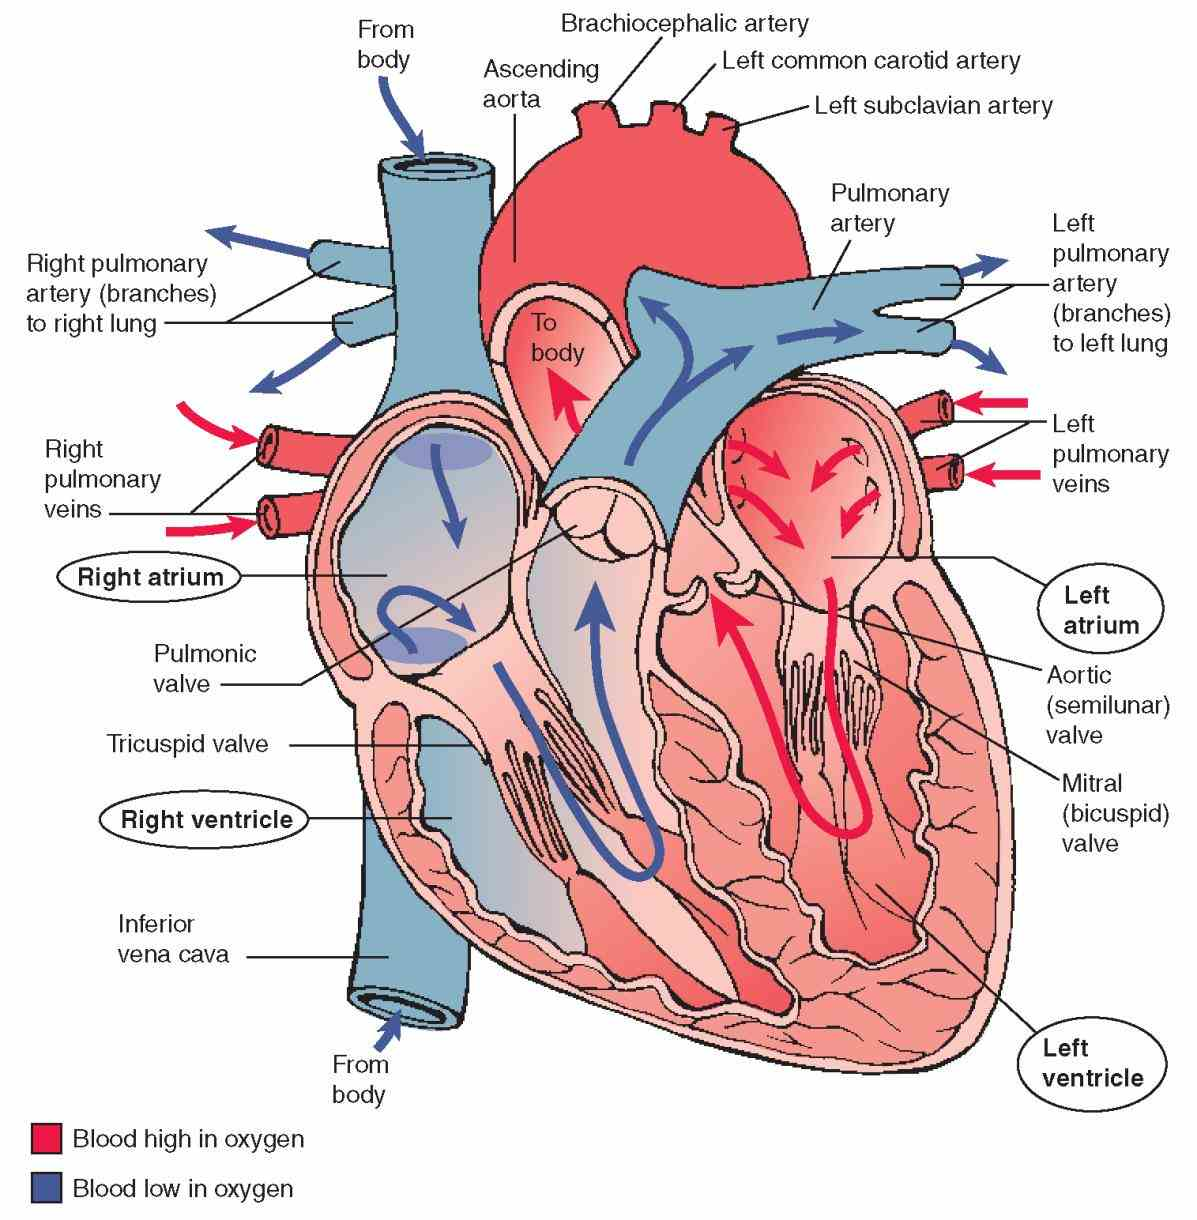 ventricles lower there is a valve through which  heart Heart Valves Structure And Function valves function to promote coordinated